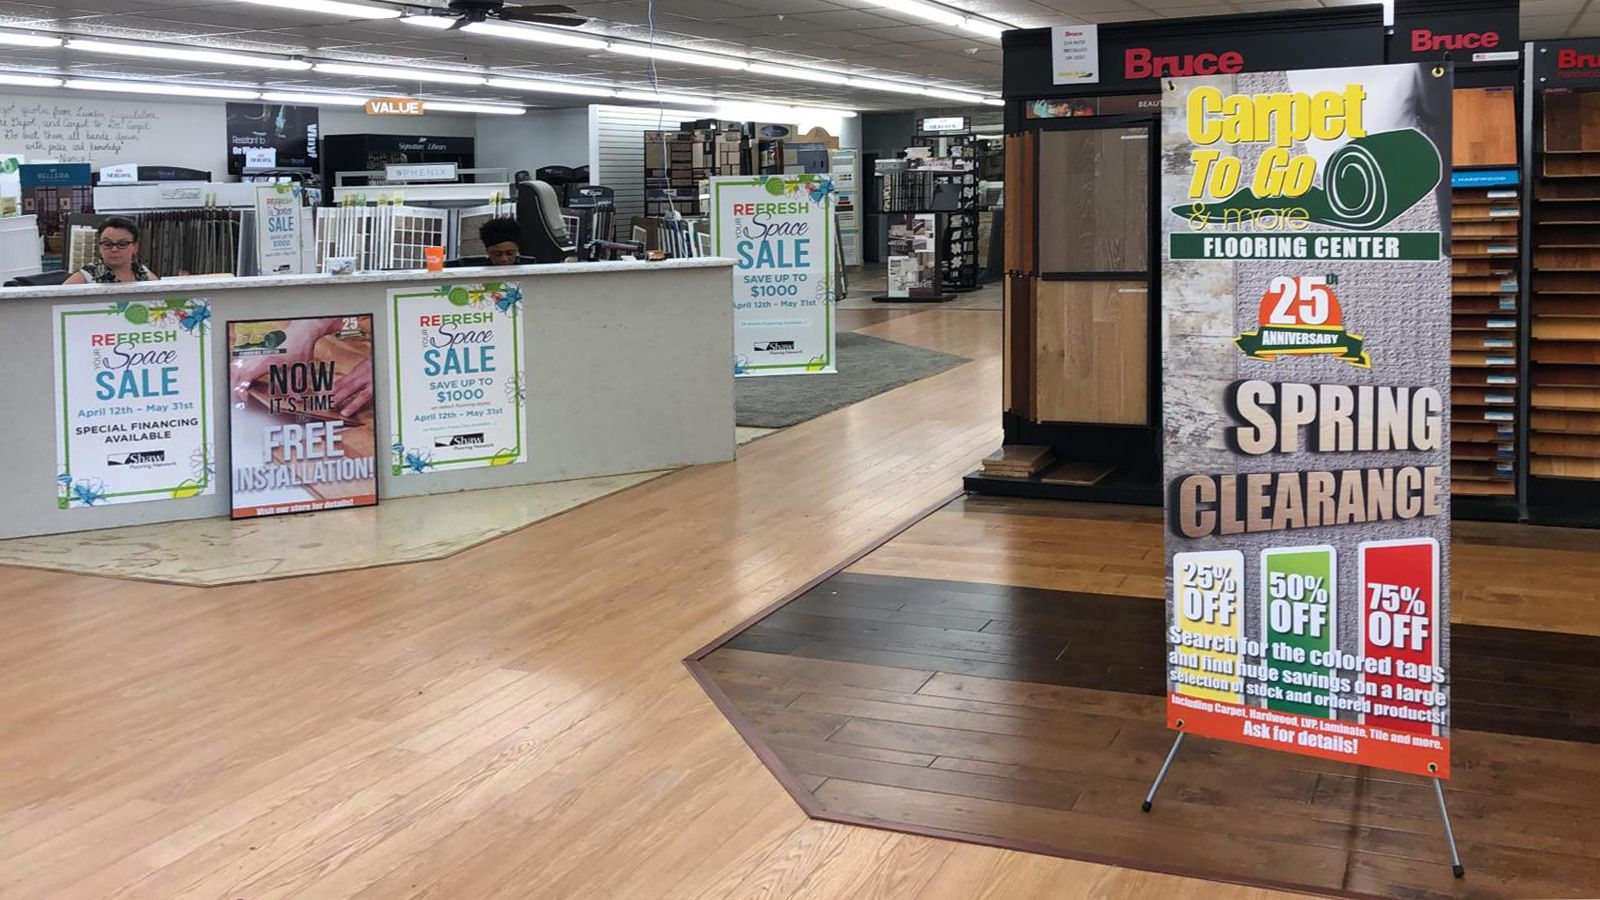 Spring Clearance Special Carpet To Go More Floor Installation Et2 Flooring